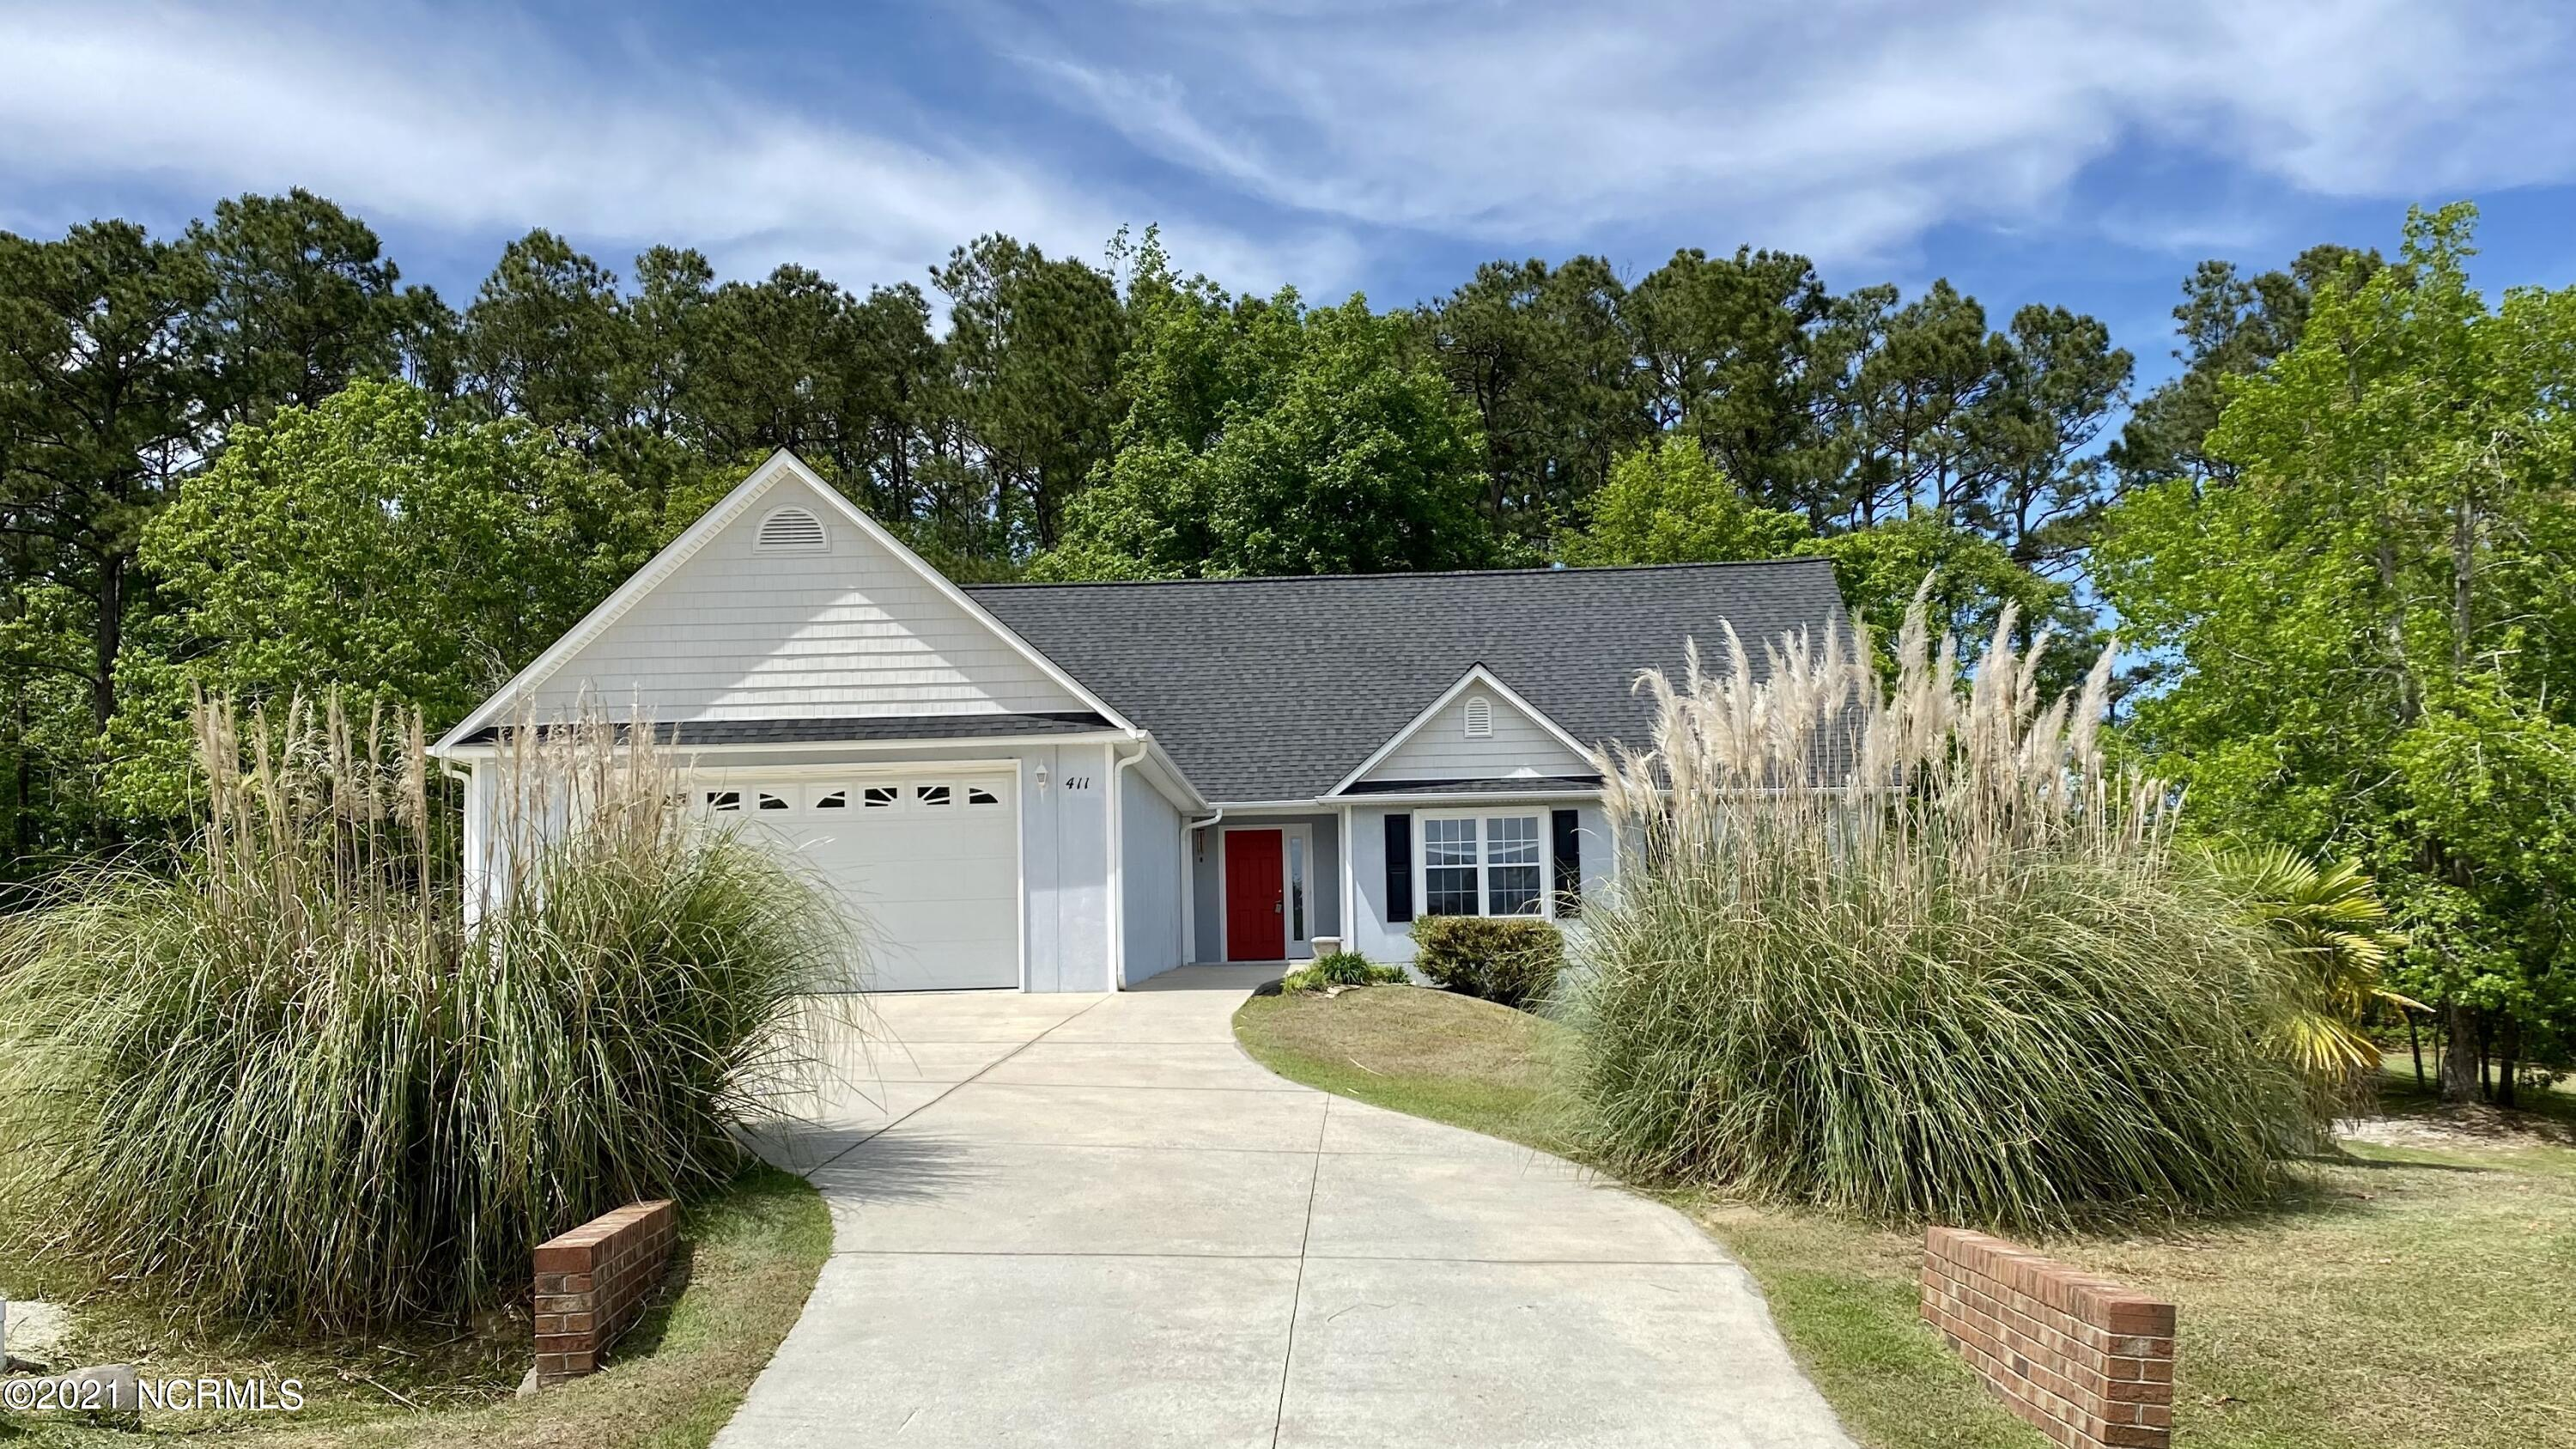 """This gorgeous one of a kind home is located in the River Reach WEST subdivision. This community has a dock and boat ramp access to the White Oak River. This home is constructed with 10 1/4'' thick concrete walls, superior walls NC, concrete (not stucco or EFIS) which make it very energy efficient and sound deadening. It is ideal for safety during Hurricane season. It's very rare to find a home with a FULL BASEMENT in this area, but this home has one! It is conditioned and partially finished. Possible uses could be a huge children's playroom, workshop, man cave/she shed...Additional living area and a bathroom (plumbing roughed in-in slab) can also be installed in the basement.  The home's interior has tall vaulted ceilings and interior has just been freshly repainted.  It also has new LVP & carpet flooring throughout and a new roof, 2019.  The relaxing backyard is large with 6' privacy fence.  This rare home won't be on the market for very long - so schedule a private tour today and claim it! Located only 2.6 miles from Walmart. Conveniently located to restaurants, shopping, churches and schools. Only 2.3 miles to Downtown Swansboro and 7.5 miles to Emerald Isle public beach access. Located midway between Camp Lejeune, MCAS New River and Cherry Point, Jacksonville and Morehead City. (See More) Copied from the Superior Walls Web Site  """"Smart homeowners demand the Superior Walls advantage. For superior new home comfort, Superior Walls foundations are custom-designed and built to demanding specifications to be dry, warm and smart. Superior in every way. Because when your new home is built with Superior Walls, you can enjoy increased building efficiencies-with your assurance of superior living. DRY: Superior Walls' special 5,000+ psi concrete mix is moisture resistant. Because additional damp-proofing is not required, this can help you save both time and money. With the specified crushed stone footing and perimeter drain, water will be directed away from your foundation,"""